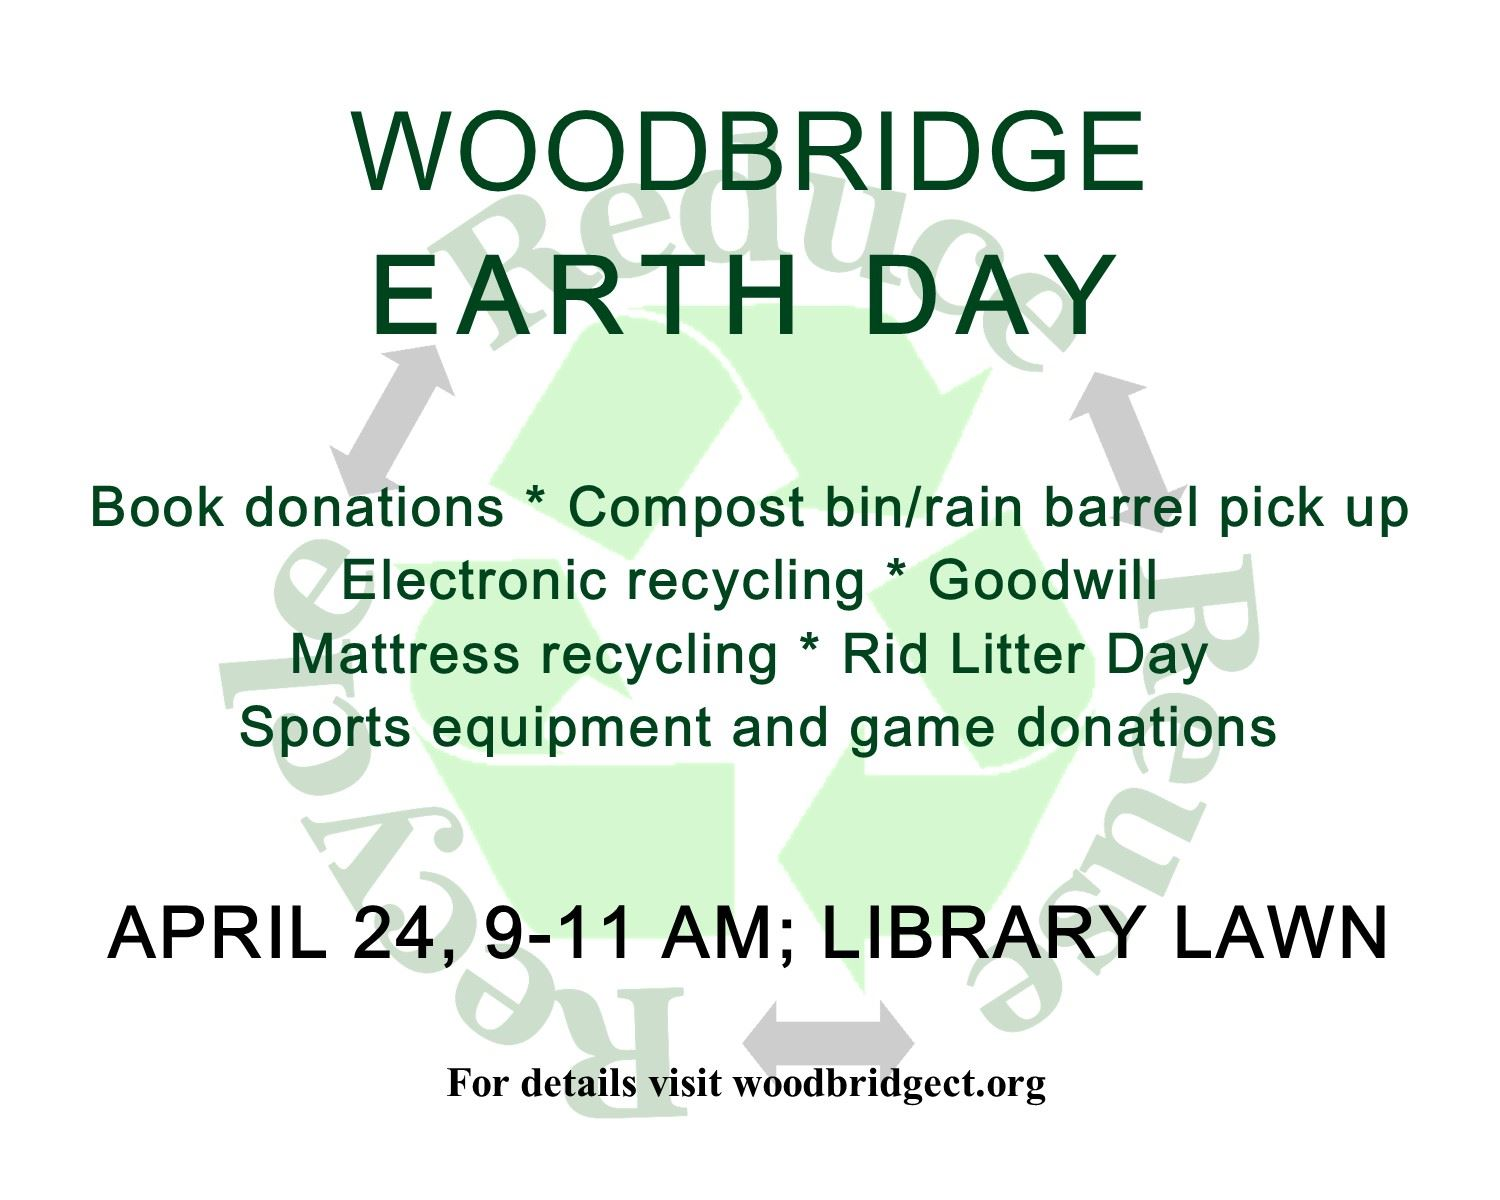 Woodbridge Earth Day 2021 flyer